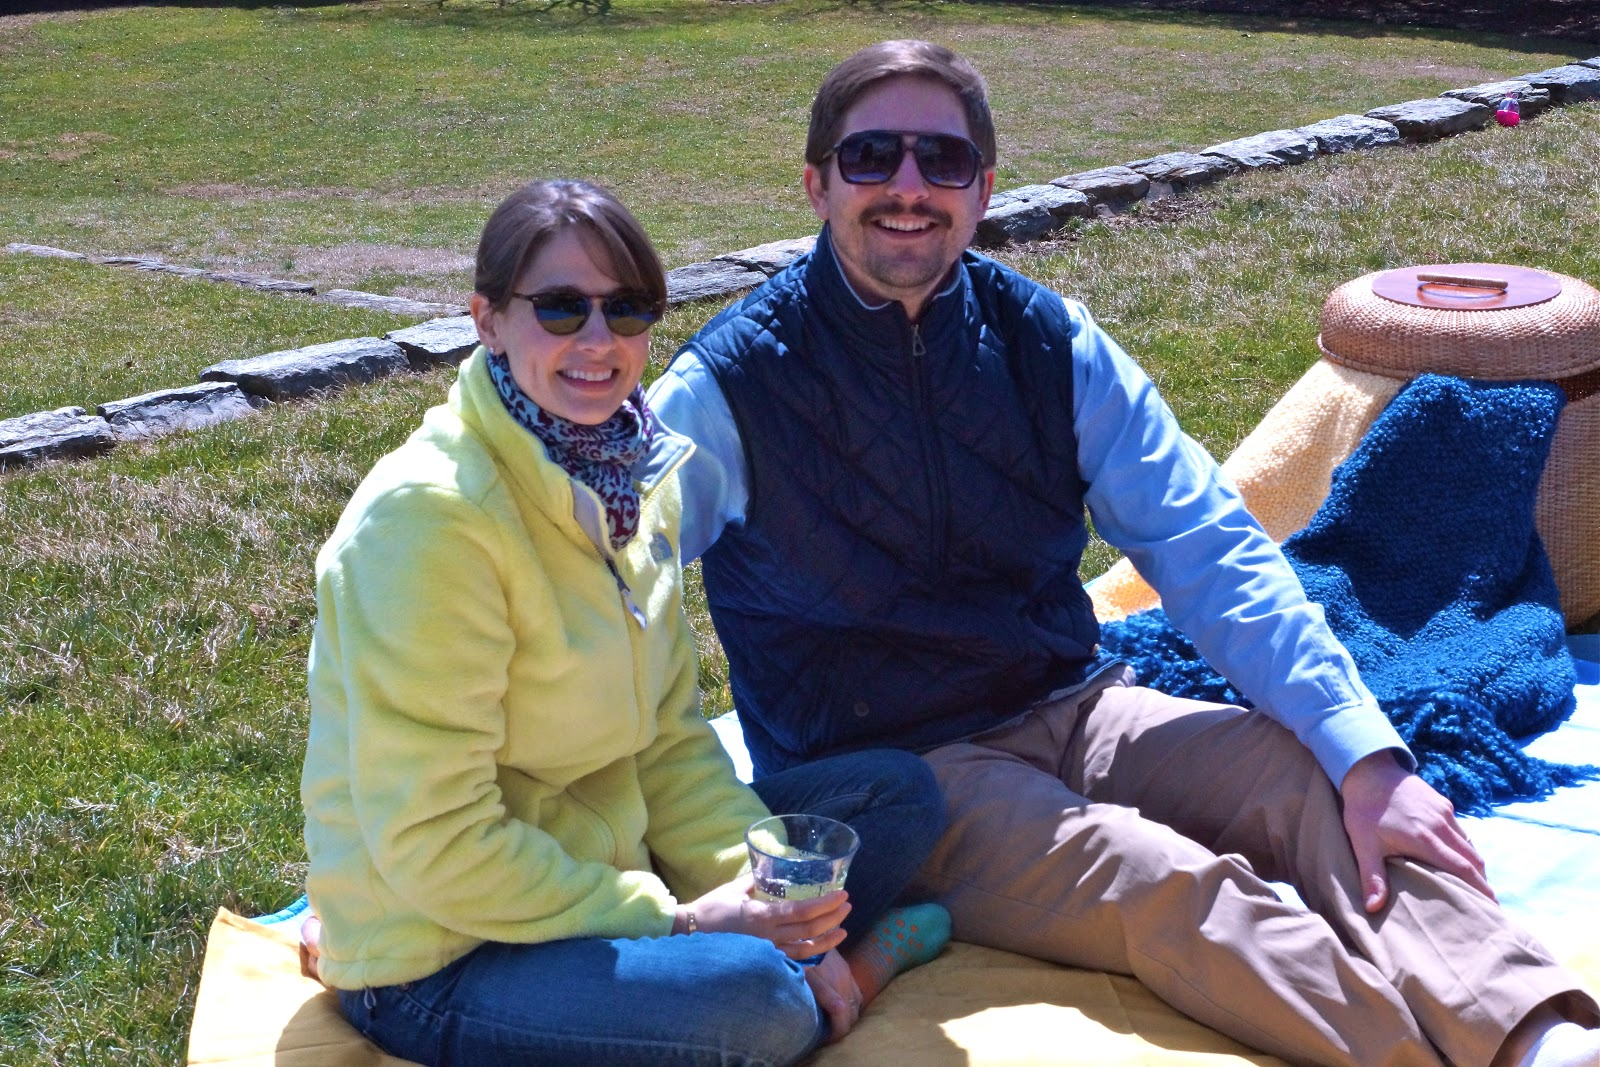 Fashionably Festive Picnic In The Country